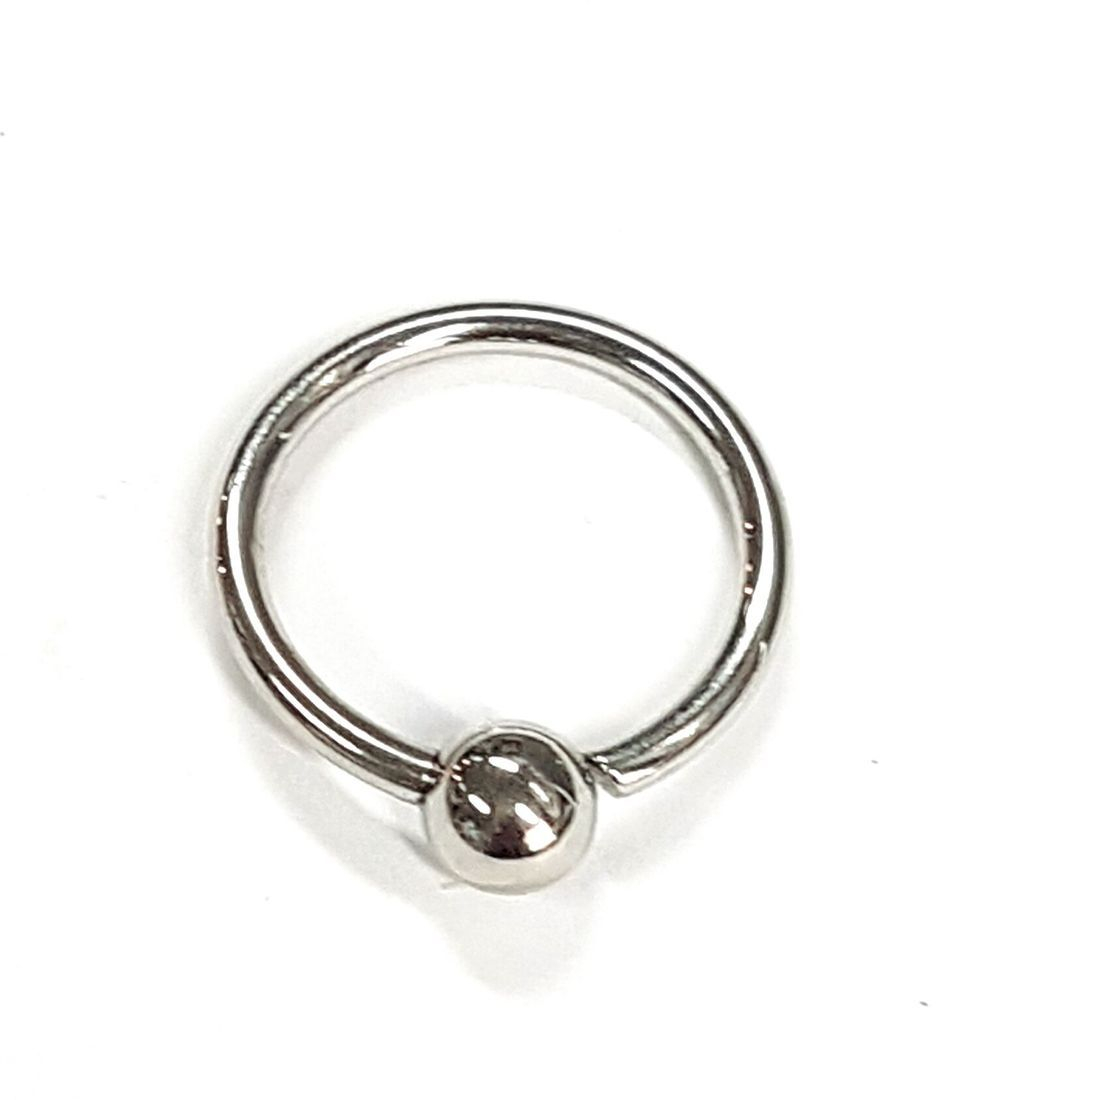 Titanium body jewellery,  larger gage rings horseshoes barbells all available from Kazbah Leicester and Kazbah Online